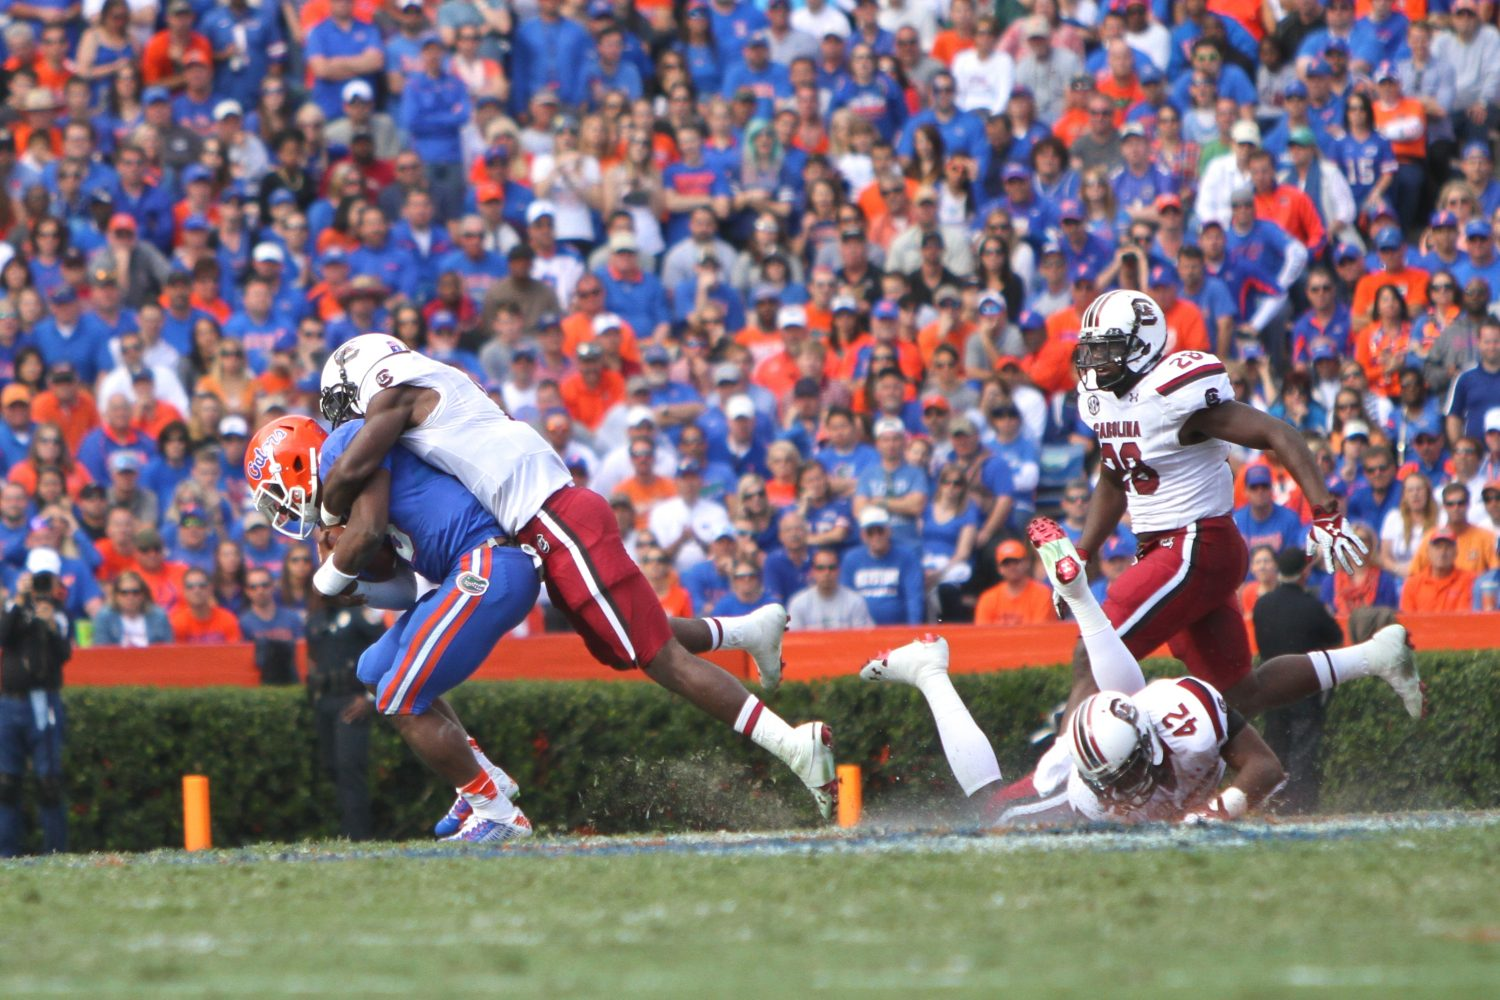 A South Carolina defender brings down Treon Harris for a loss of yards.